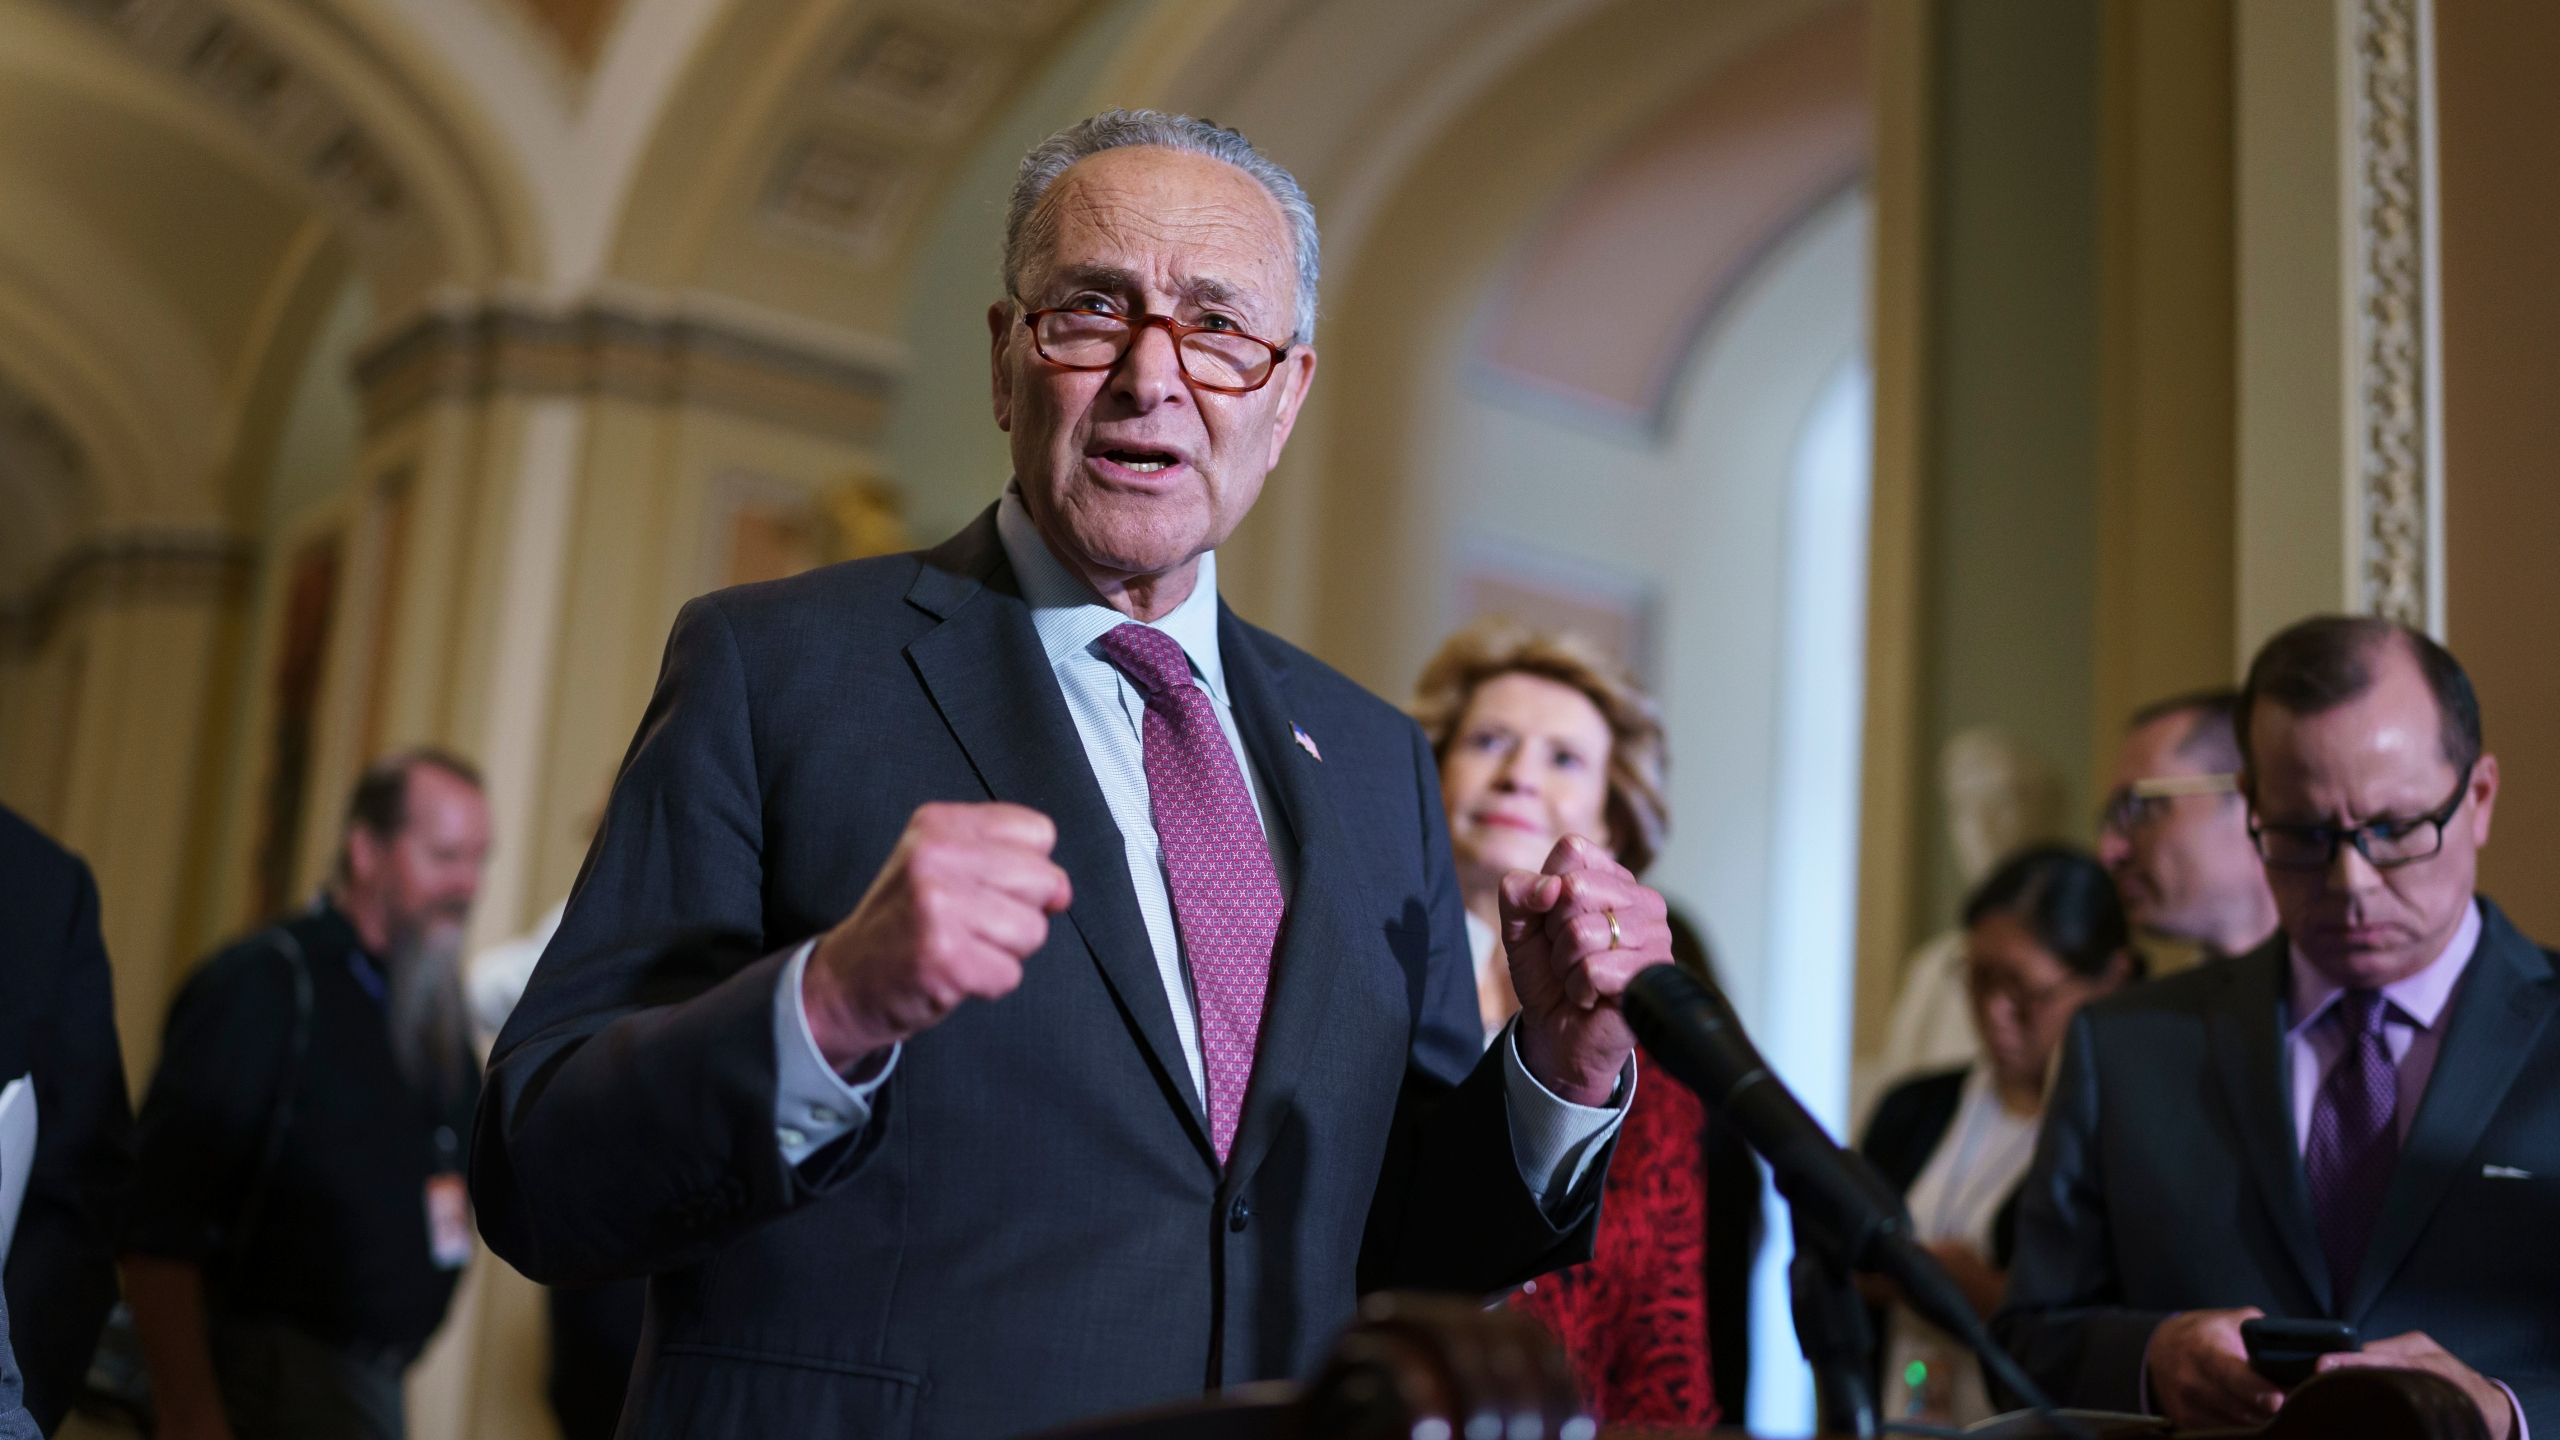 Senate Majority Leader Chuck Schumer, D-N.Y., speaks to reporters before meeting with Democratic members of the Texas Legislature who are trying to kill a Republican bill in Austin that would make it harder to vote in the Lone Star State, at the Capitol in Washington on July 13, 2021. (AP Photo/J. Scott Applewhite)